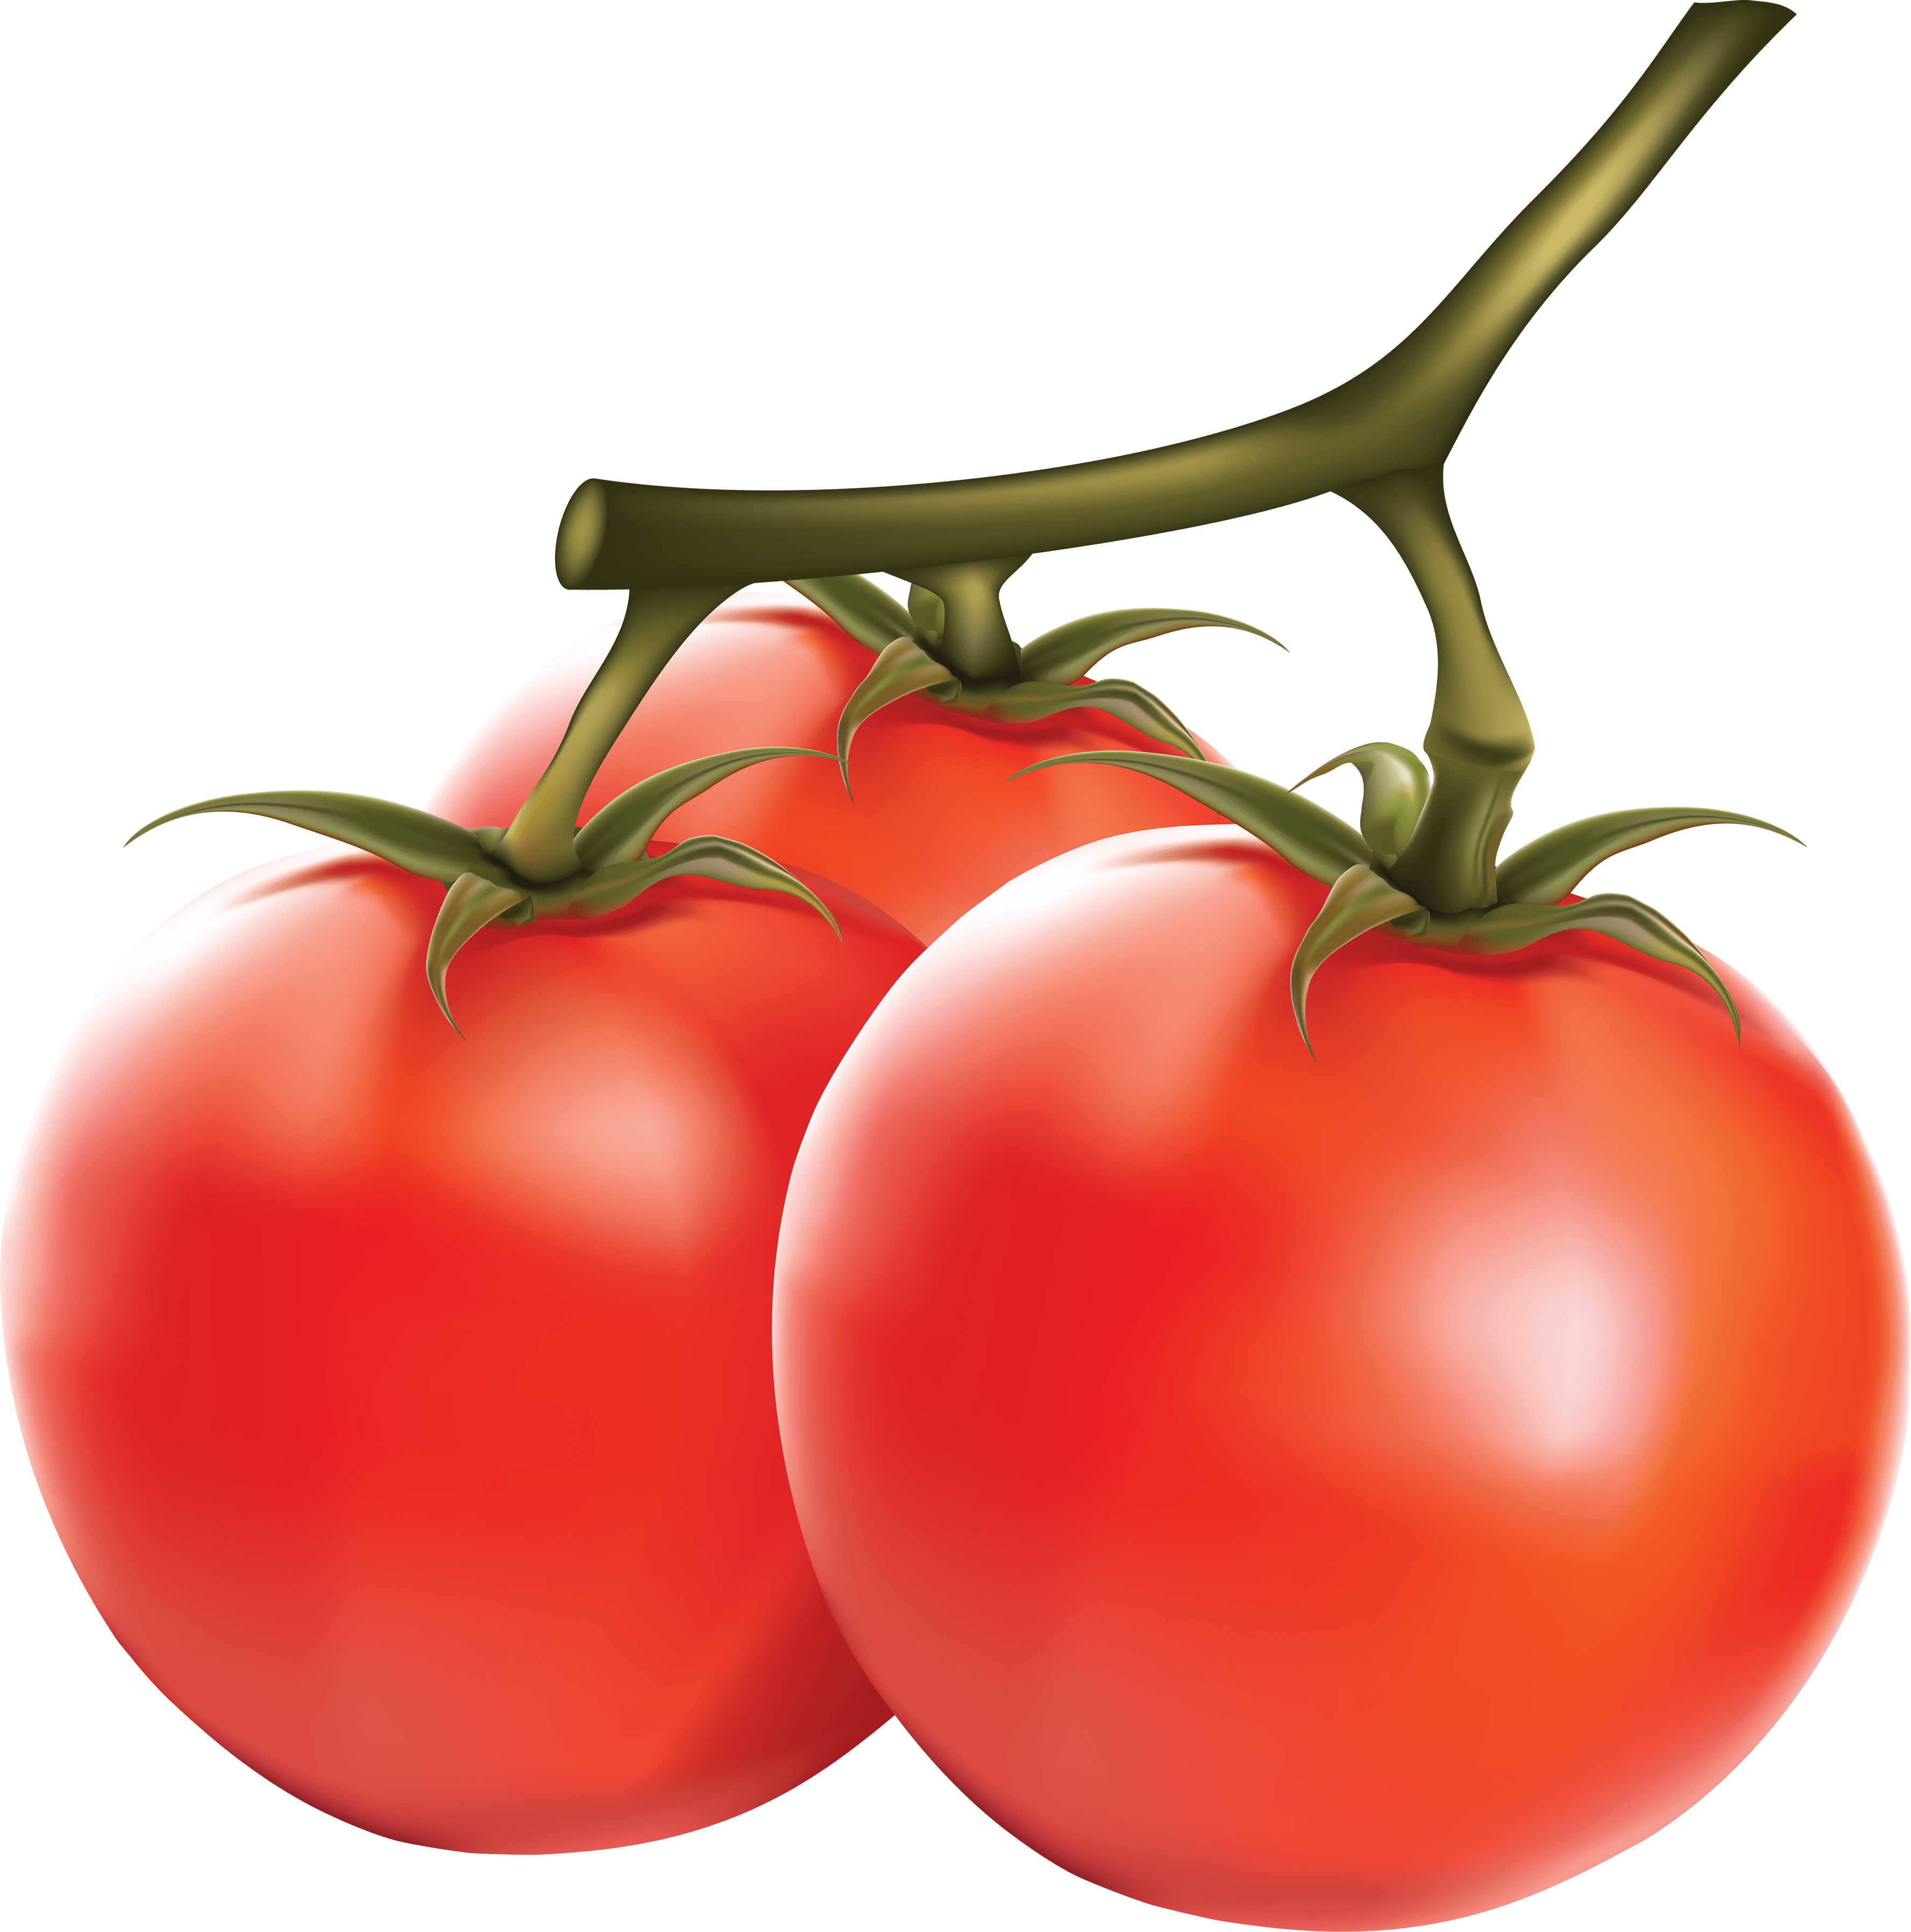 HQ Tomato PNG Transparent Tomato.PNG Images.   PlusPNG  Vector